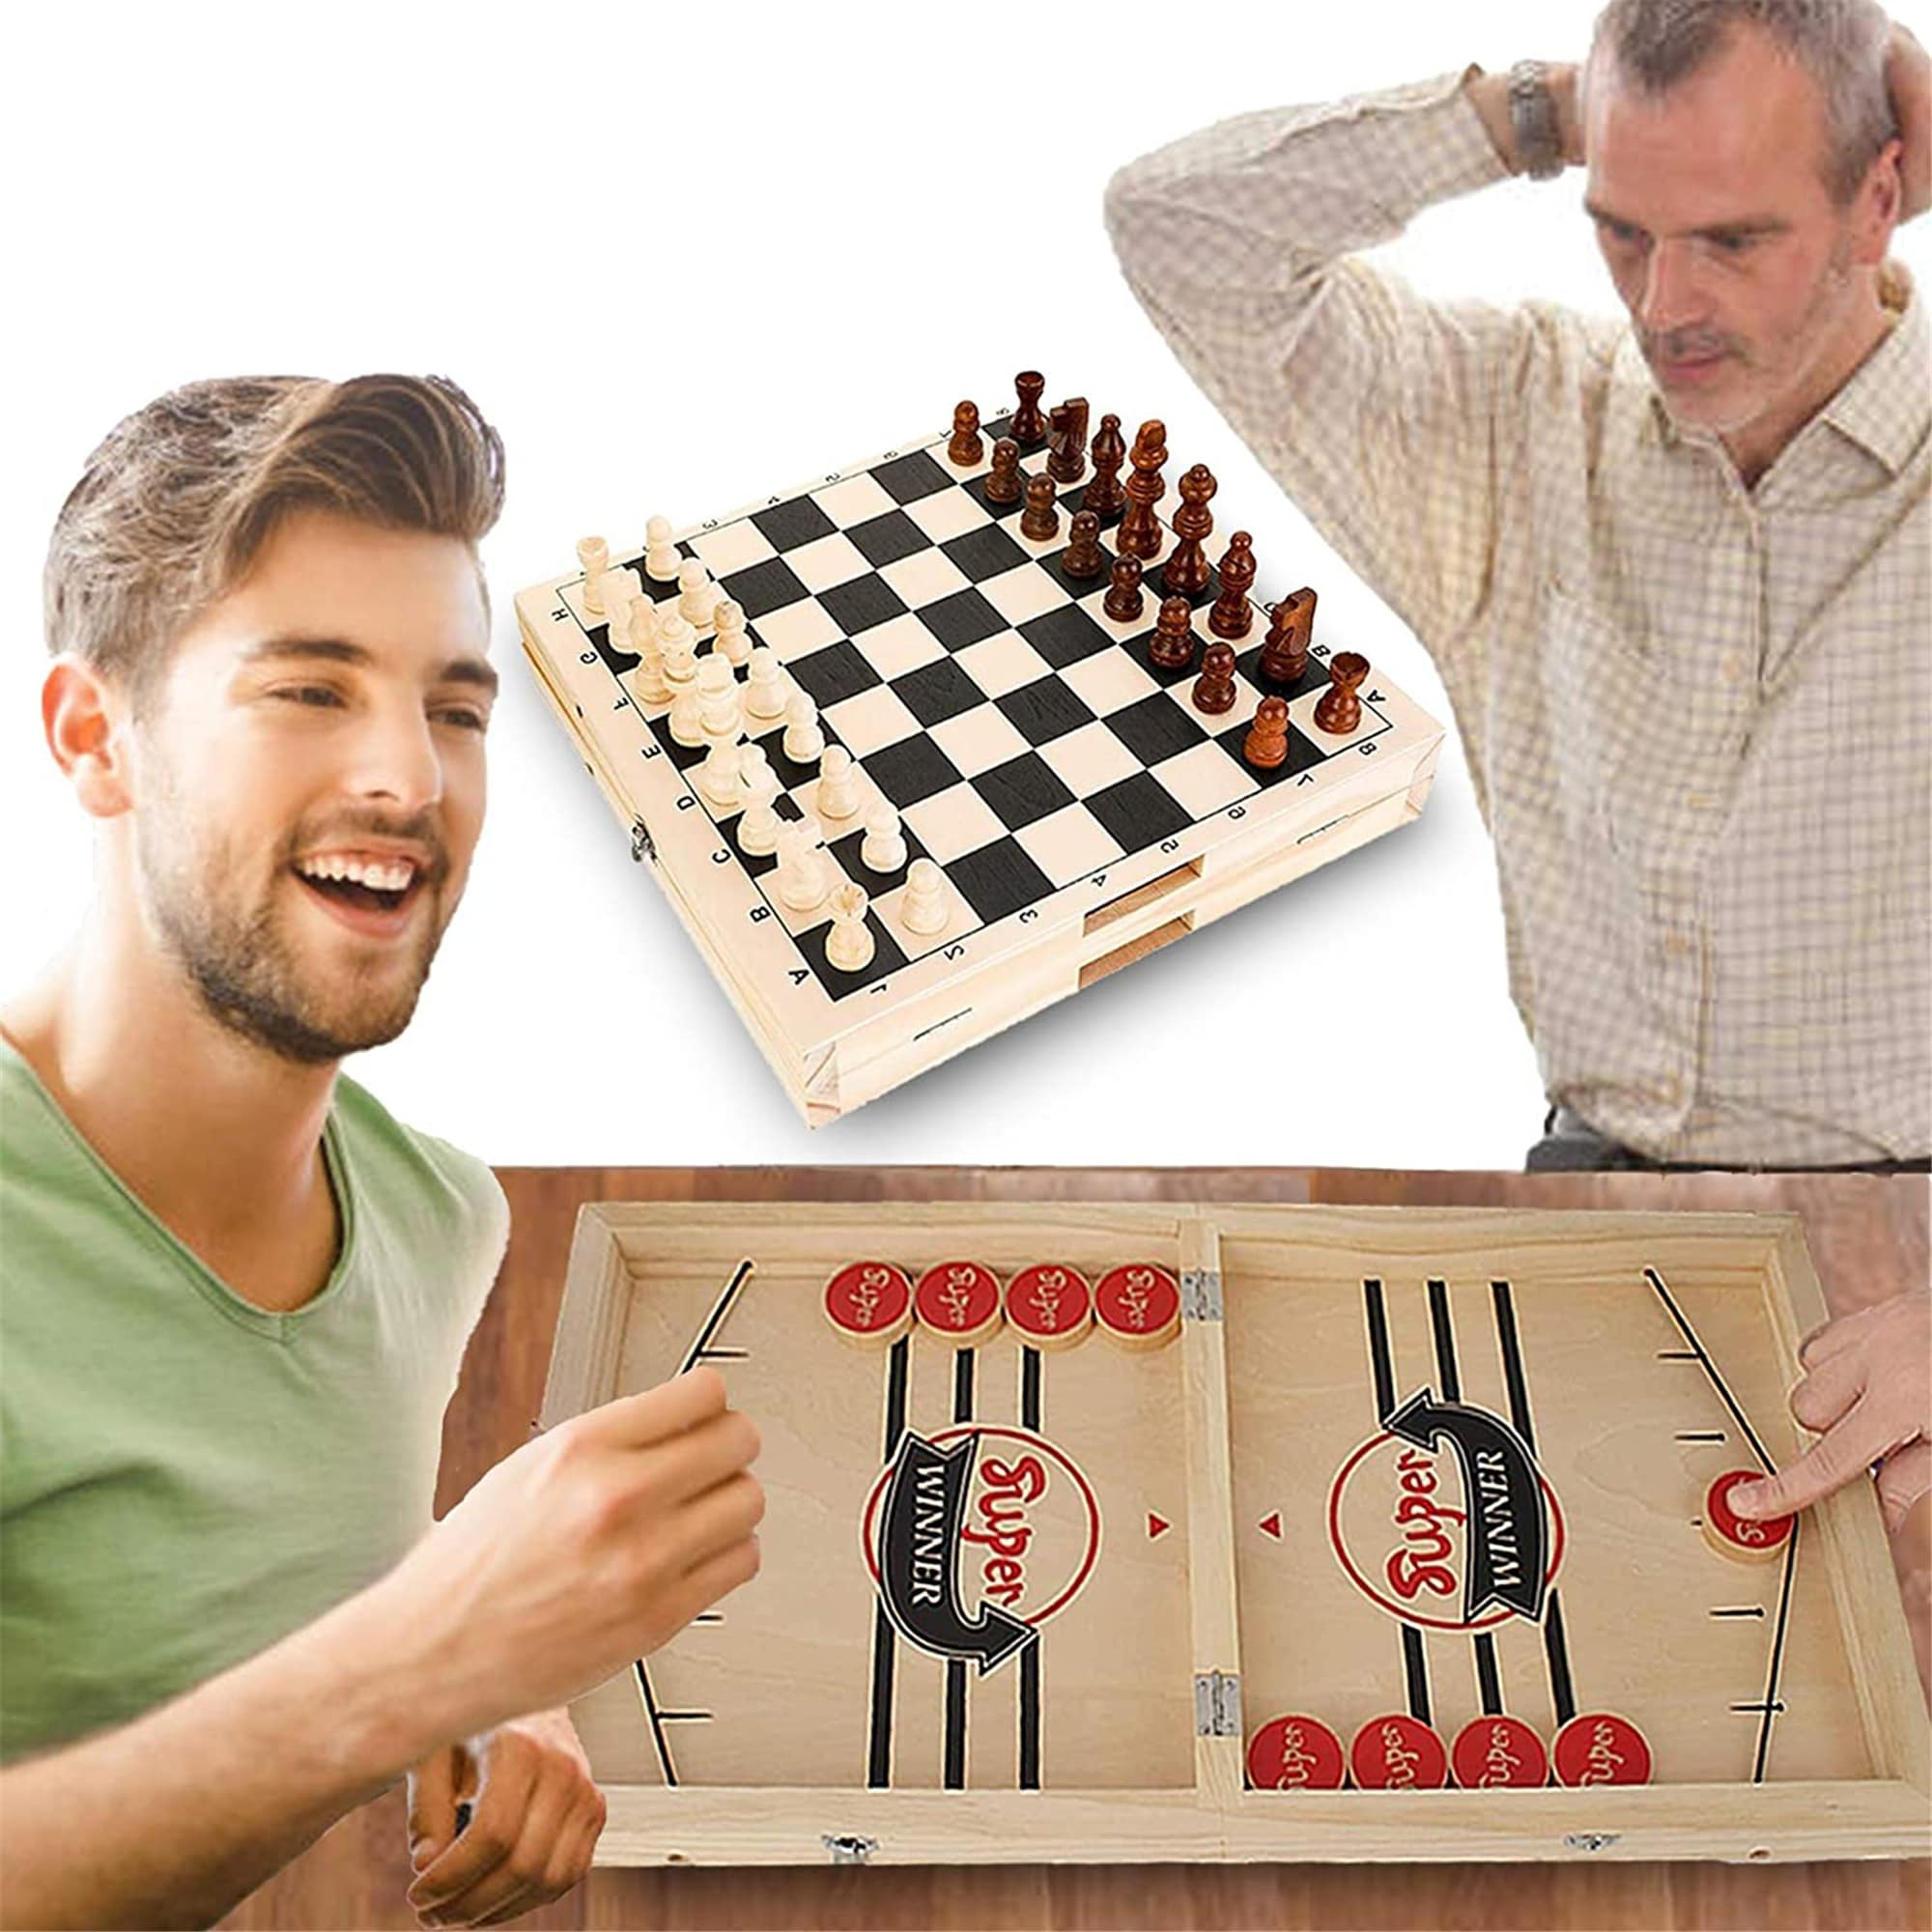 Hinaray 2 in 1 Fast Sling Puck Game /& Ludo Fast Super Bouncing Chess 22 X 12 X 1.22 Inch A Gift Idea Parent-Child Large Size Wooden Desktop Foosball Board Game Family Adults Interactive Game